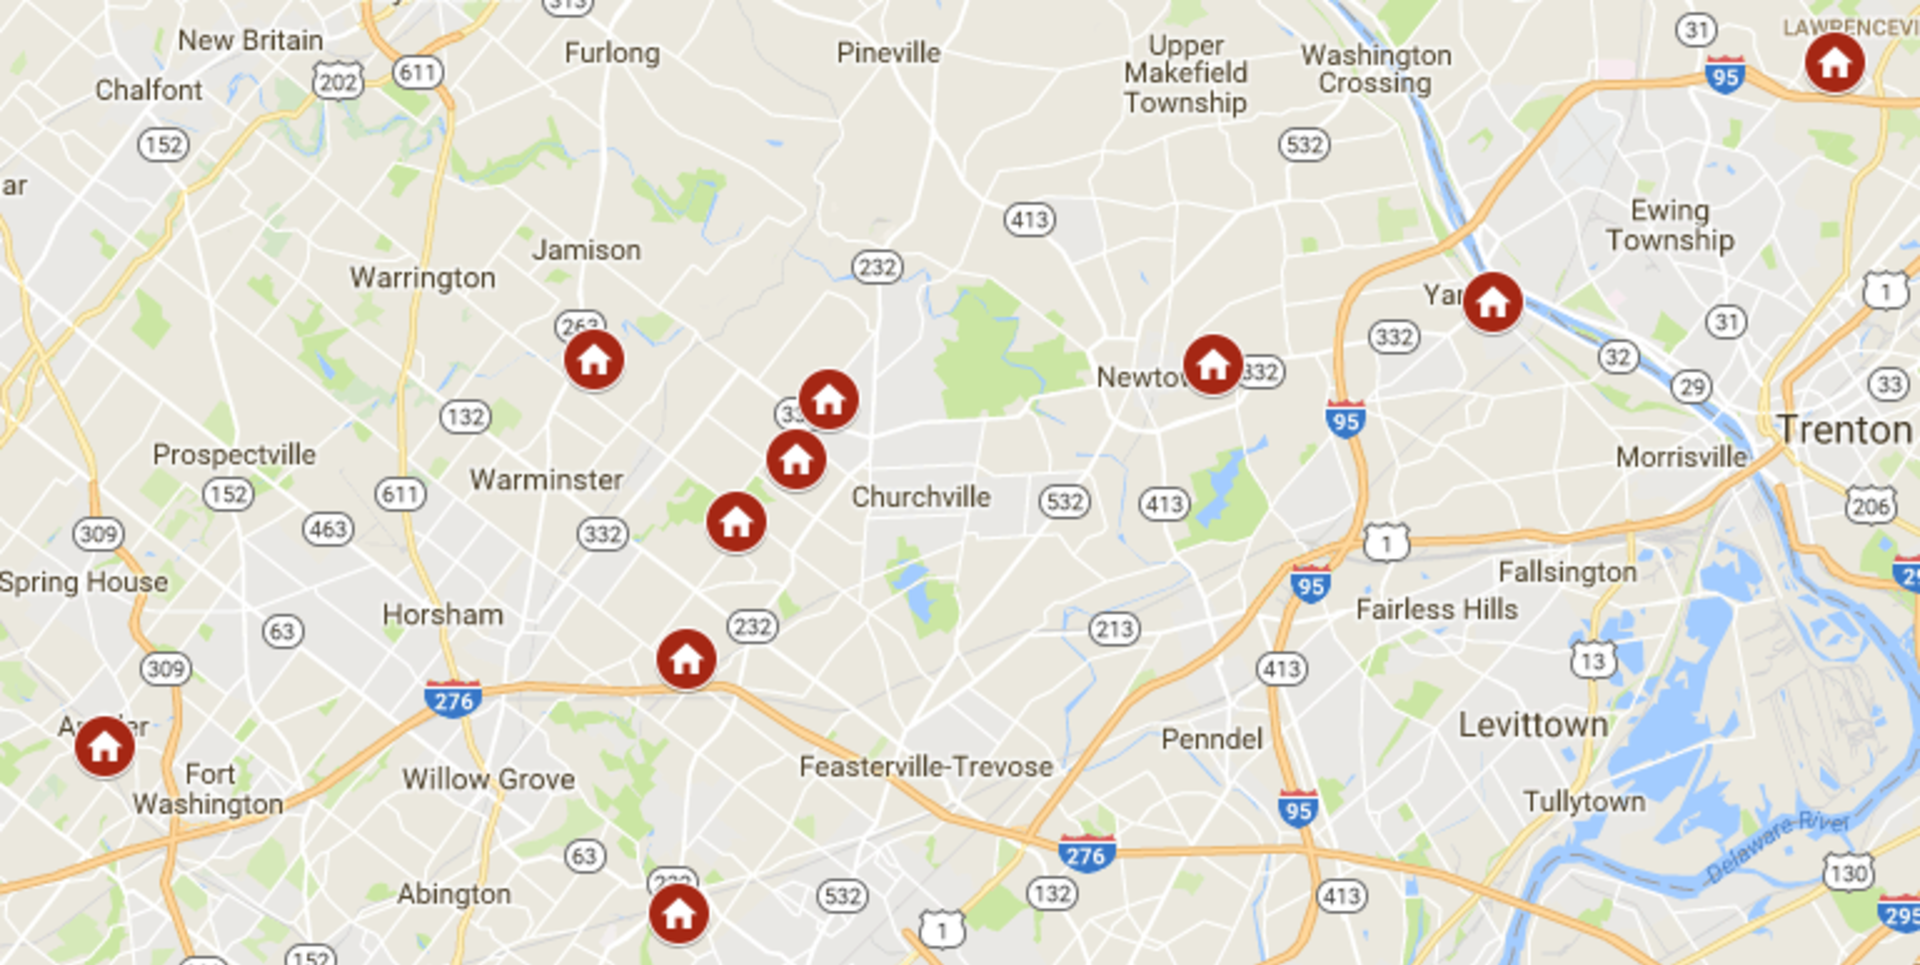 Keller Williams Newtown's open houses August 26th – August 27th